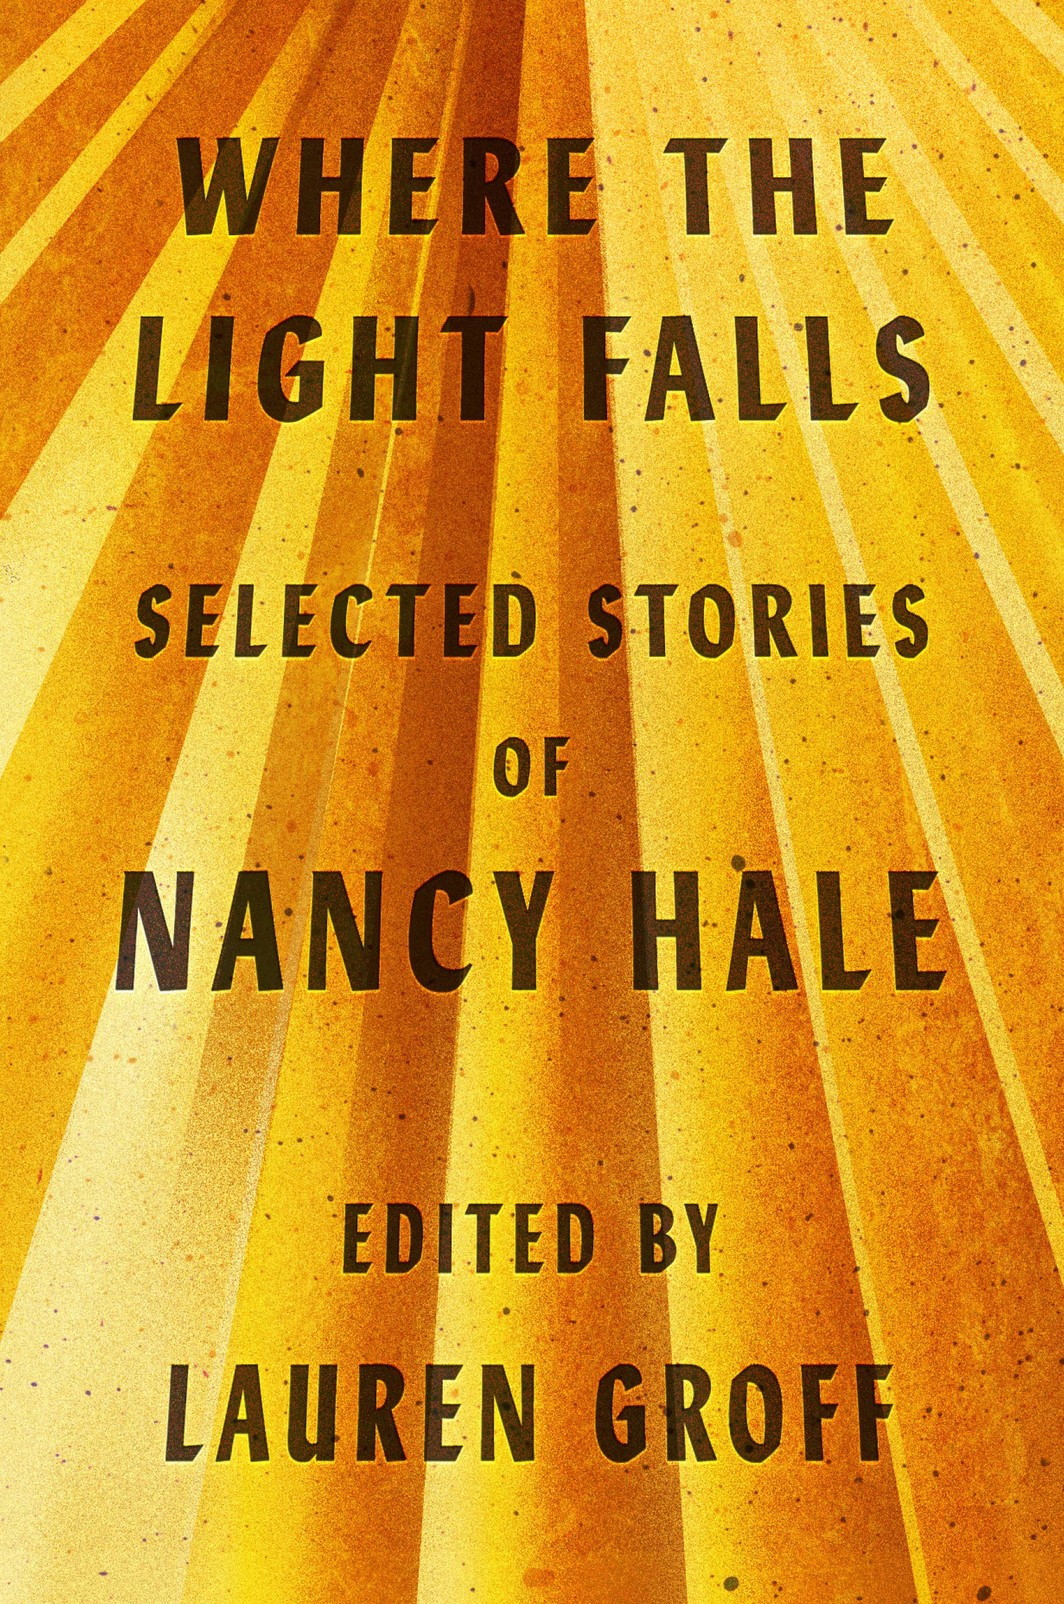 The cover of Where the Light Falls: Selected Stories of Nancy Hale